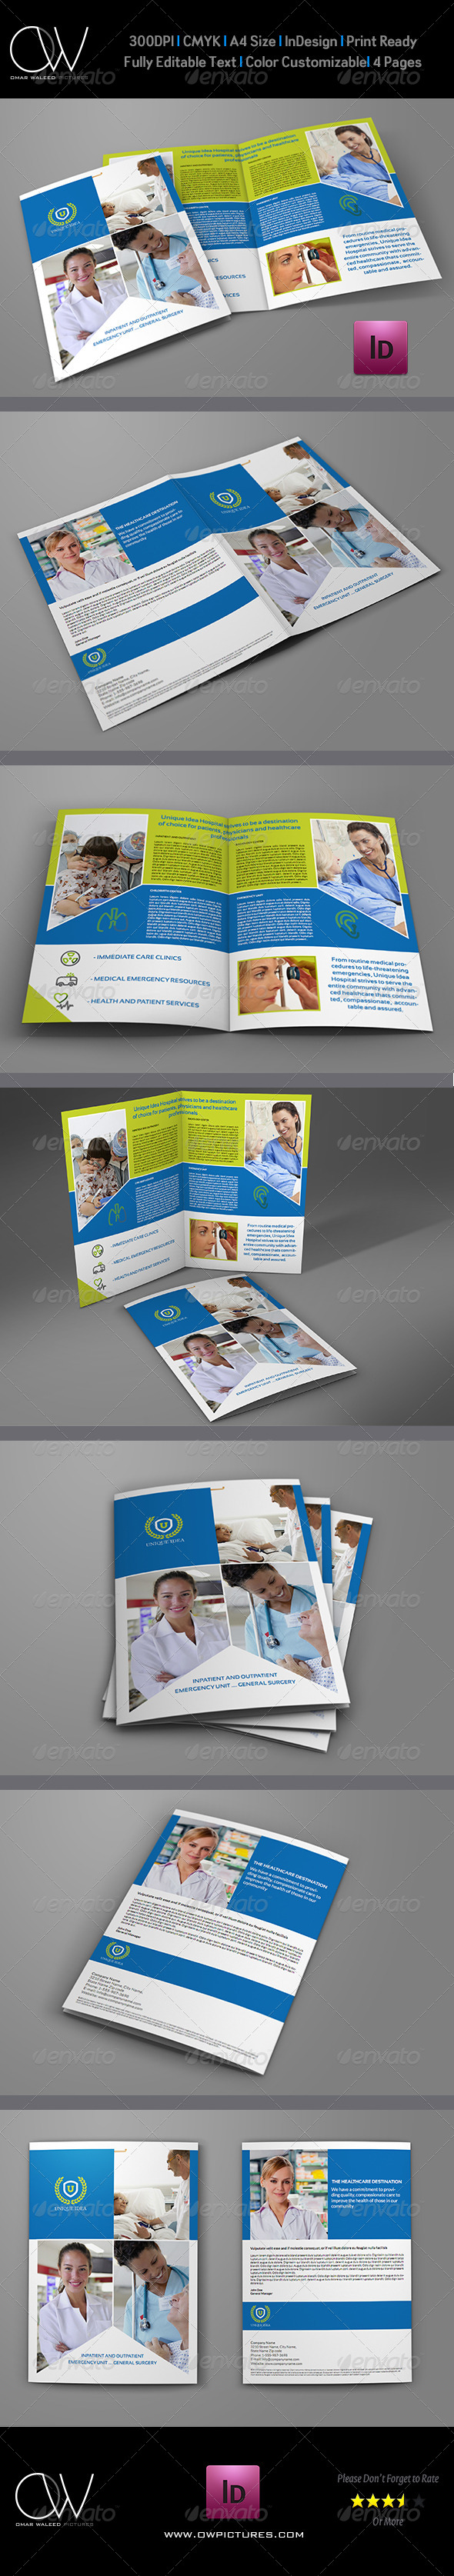 Hospital Bi-Fold Brochure Template - Corporate Brochures